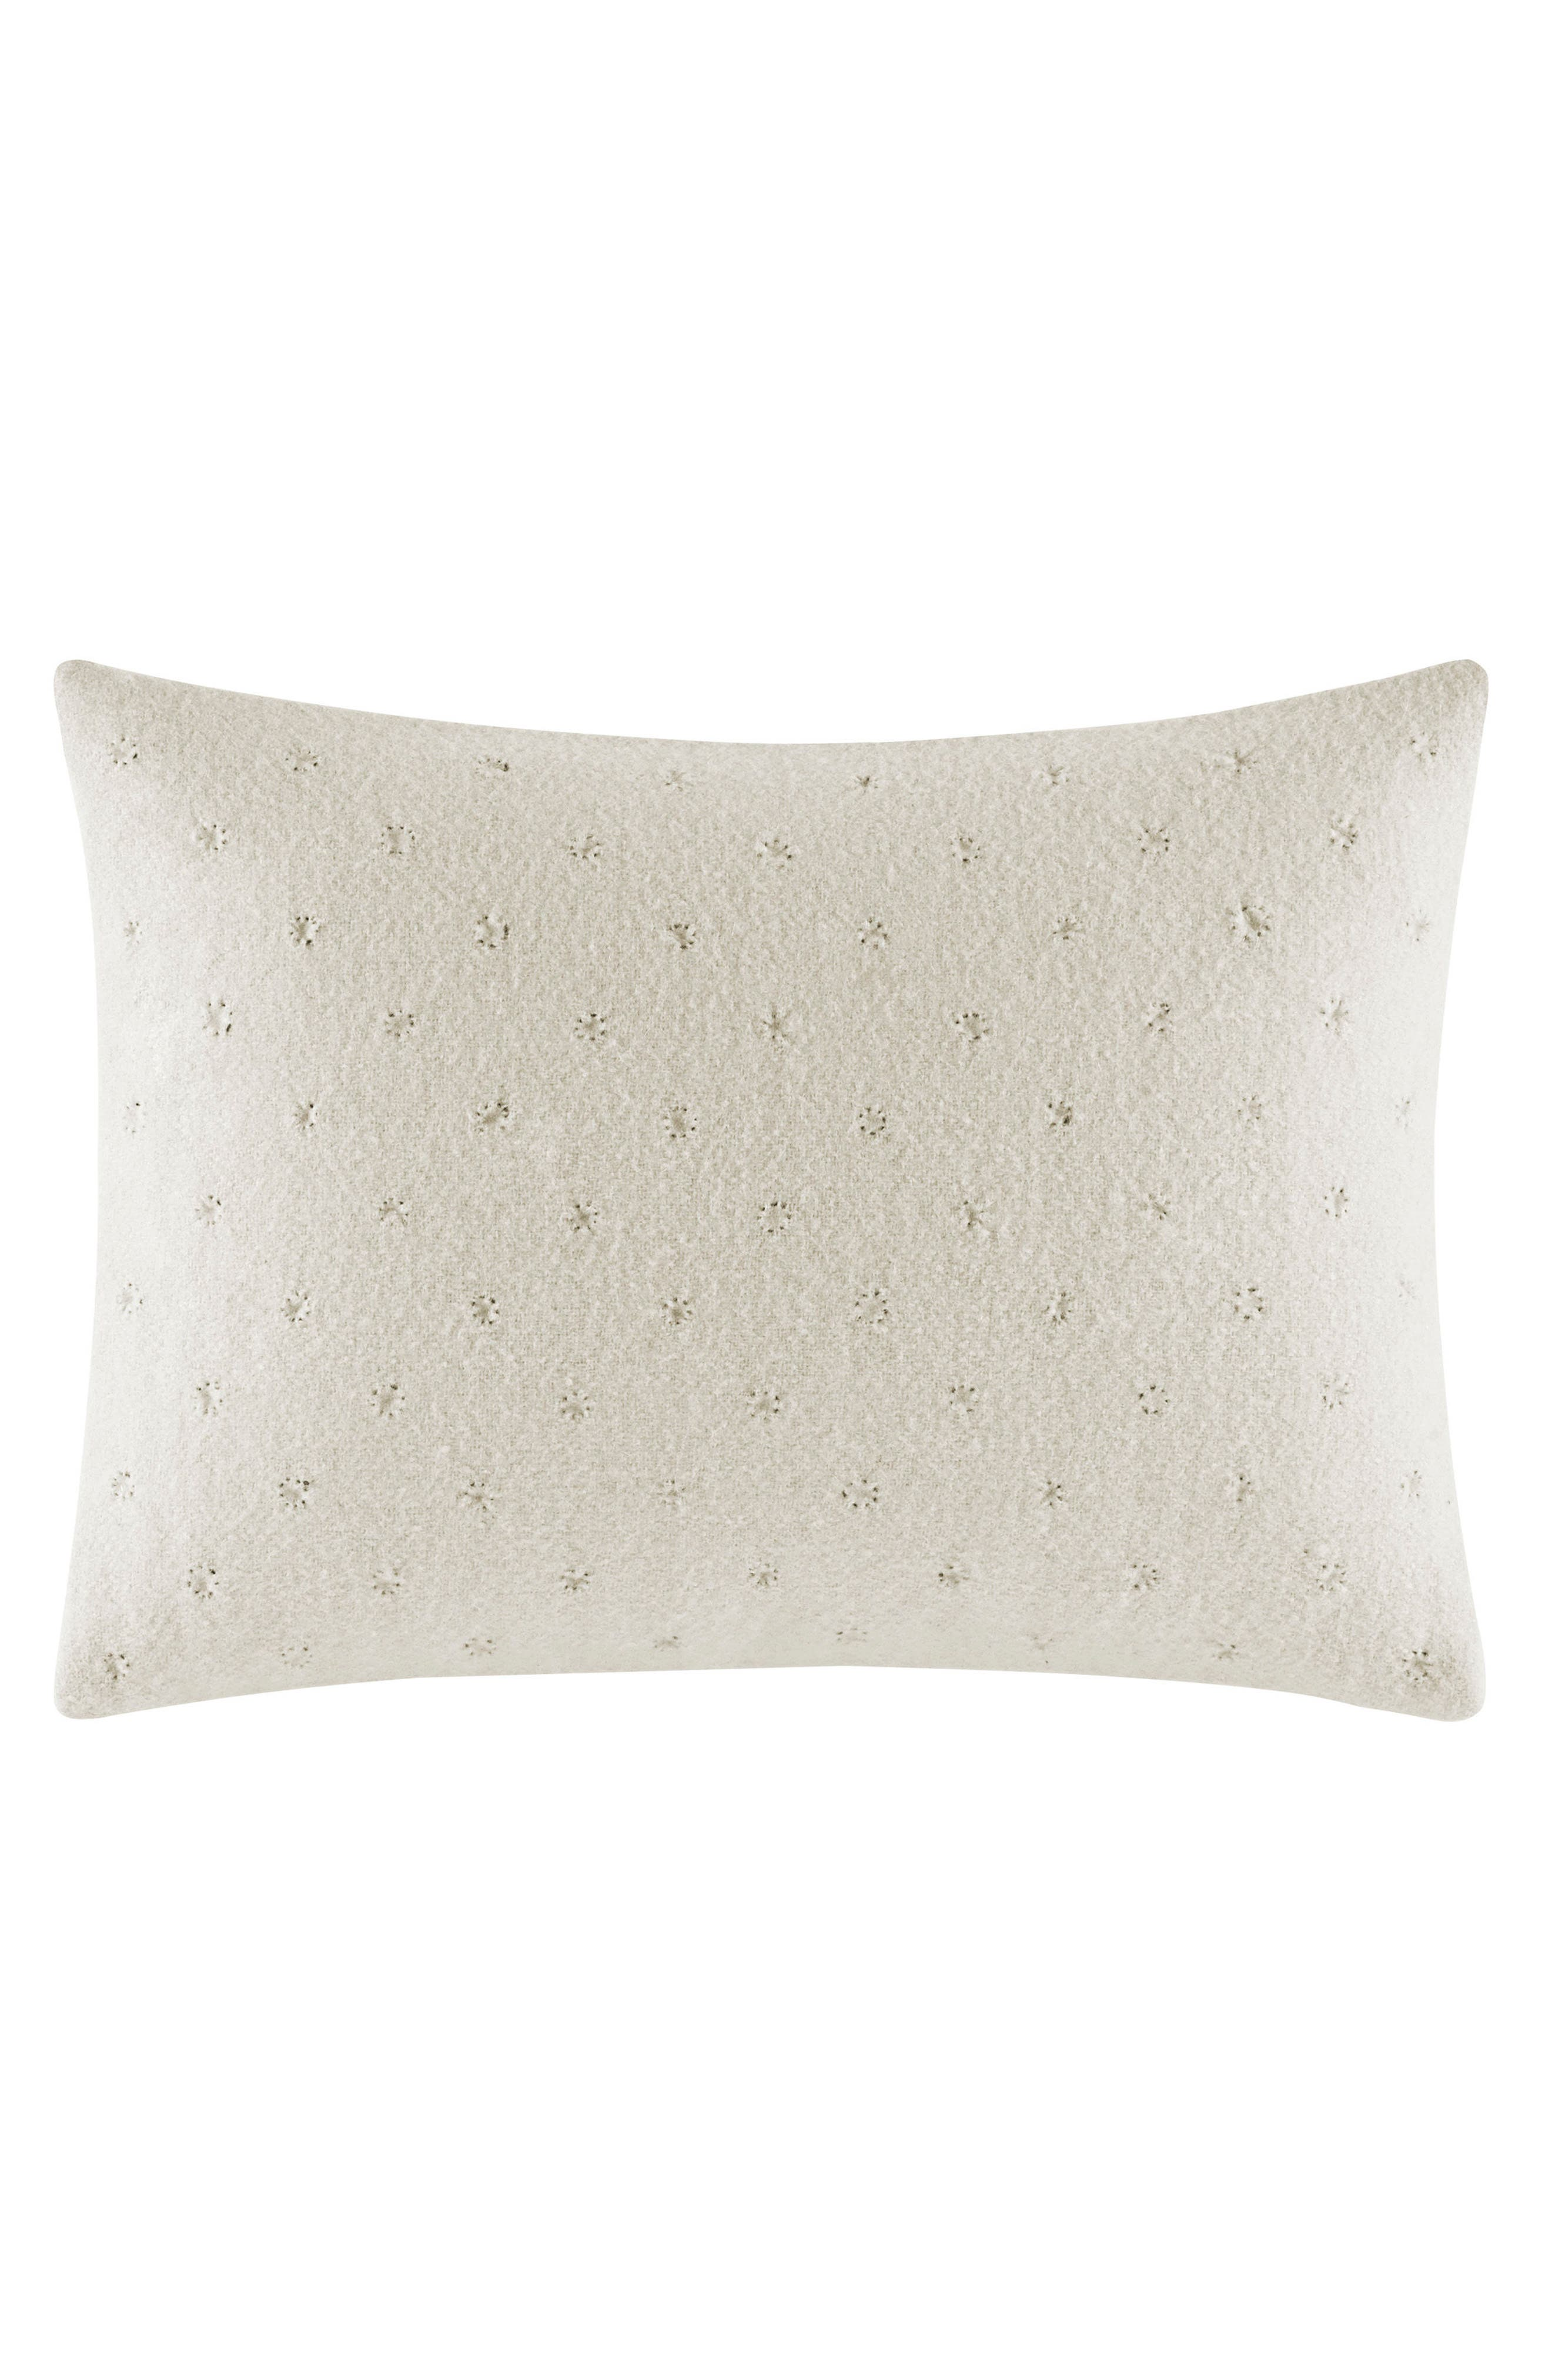 Passementerie Breakfast Accent Pillow,                         Main,                         color, Natural